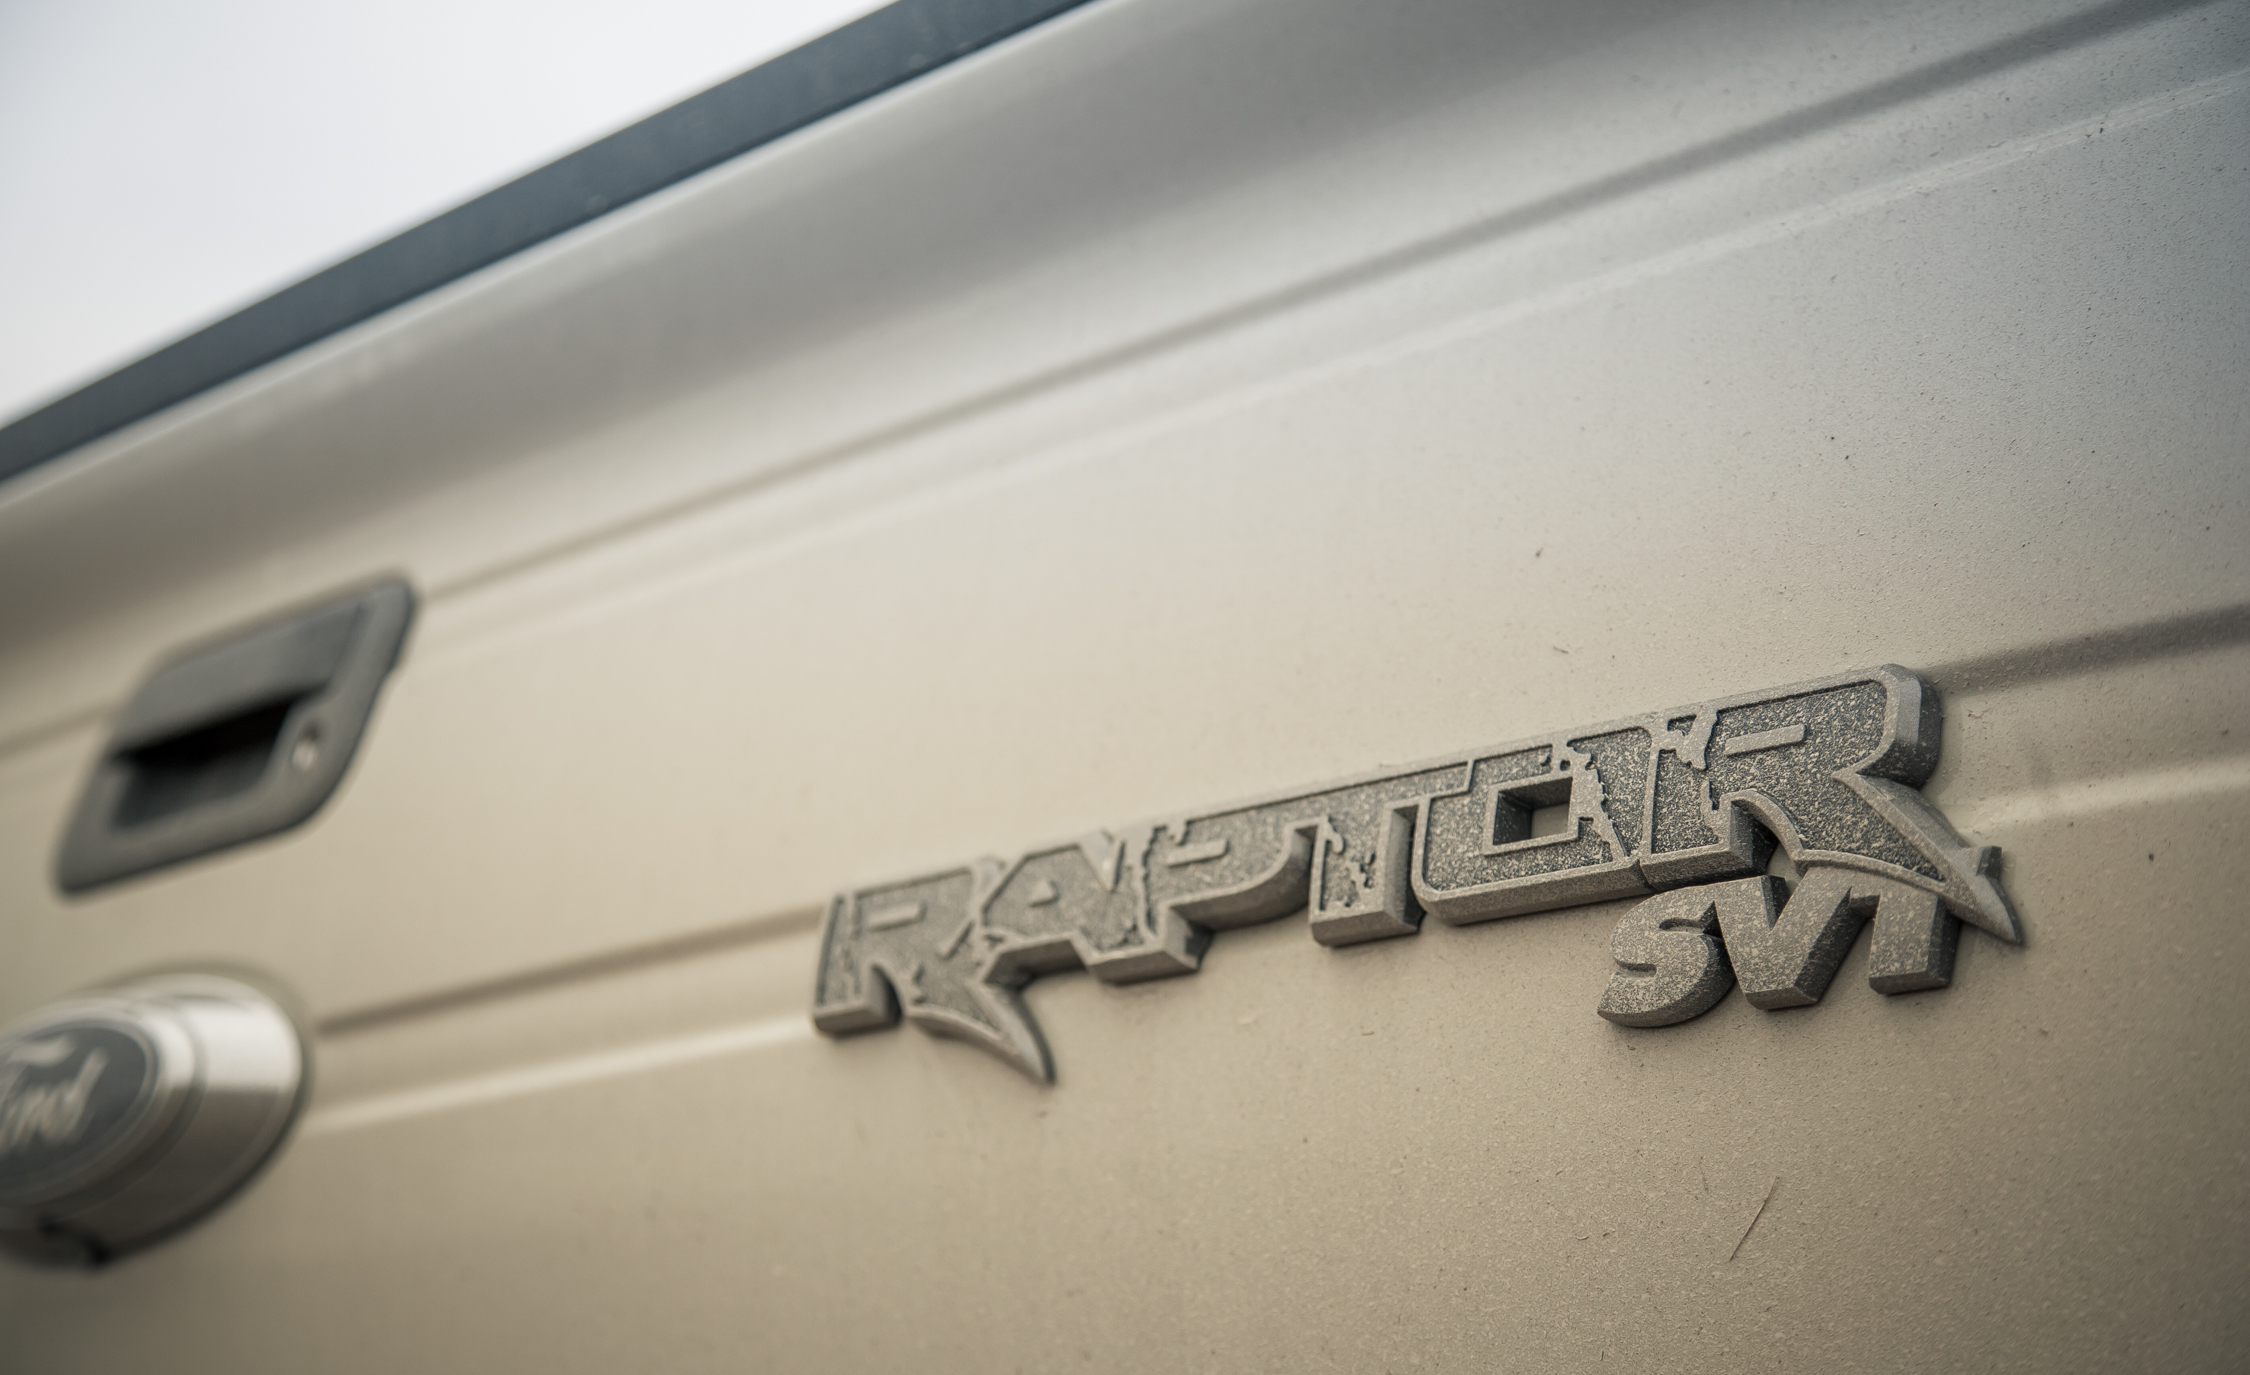 2013 Ford F 150 SVT Raptor Exterior View Rear Badge (Photo 9 of 39)